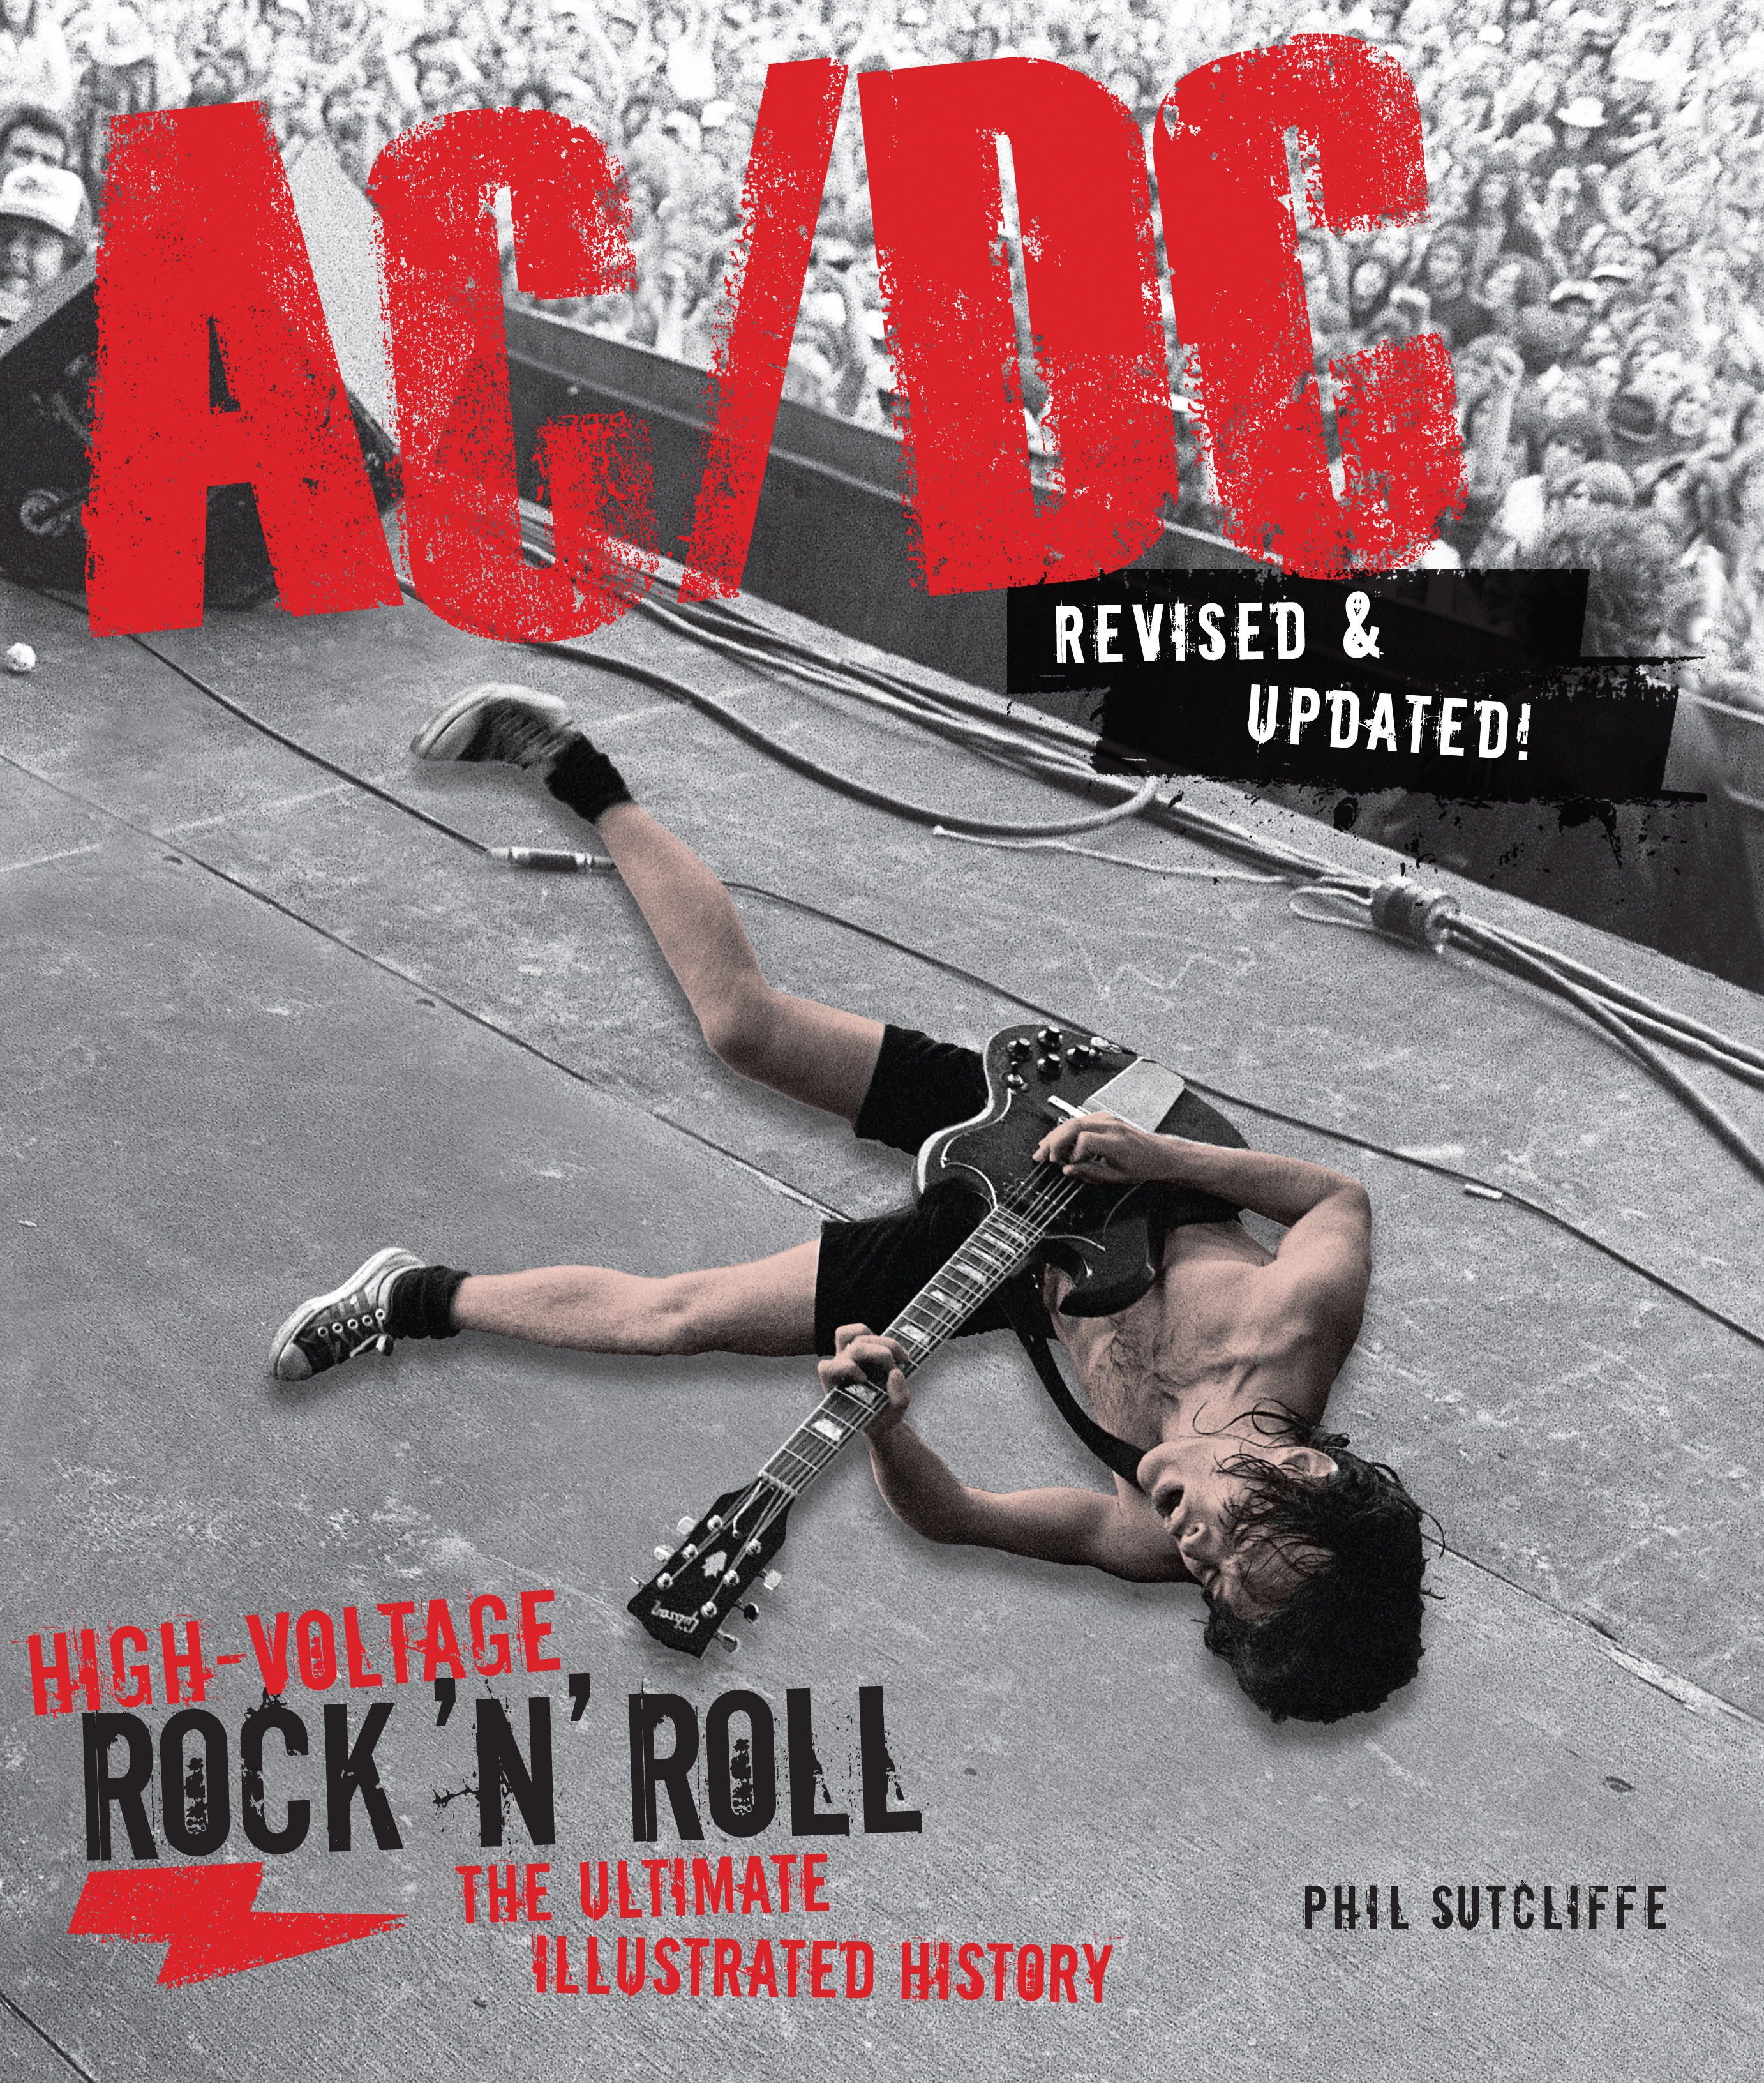 ACDC Revised Amp Updated Phil Sutcliffe 9780760349465